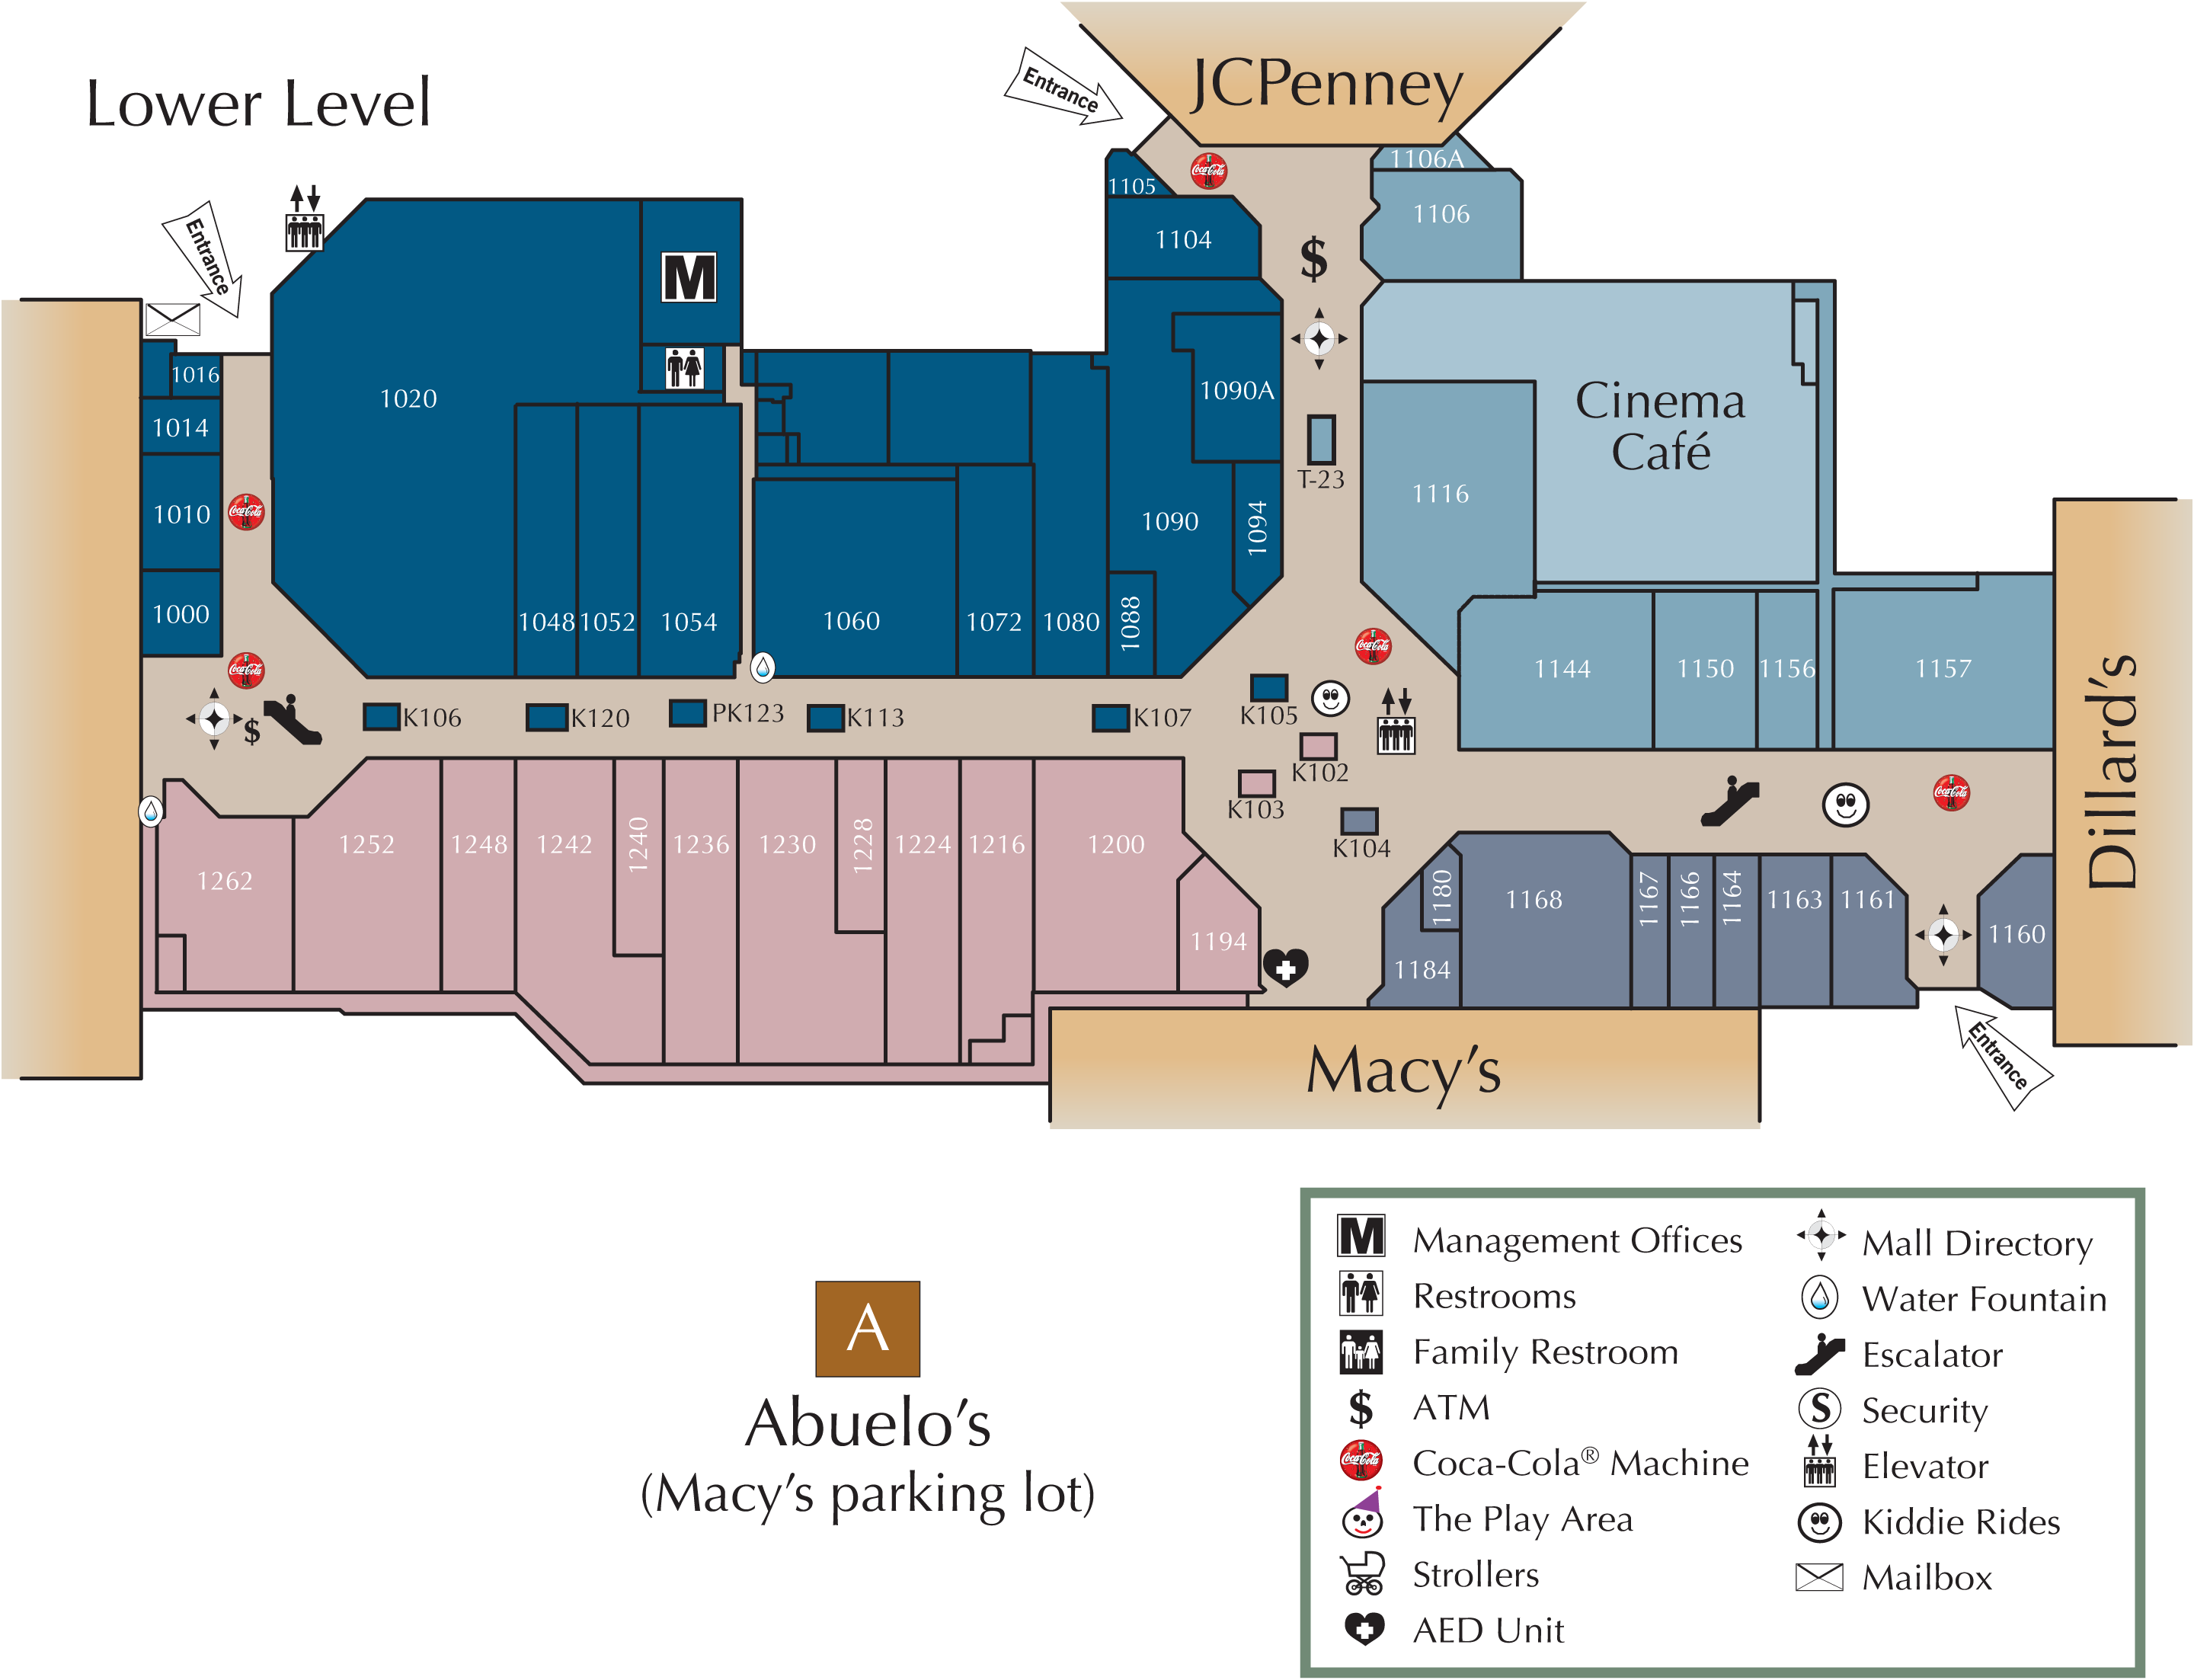 lower level directory map